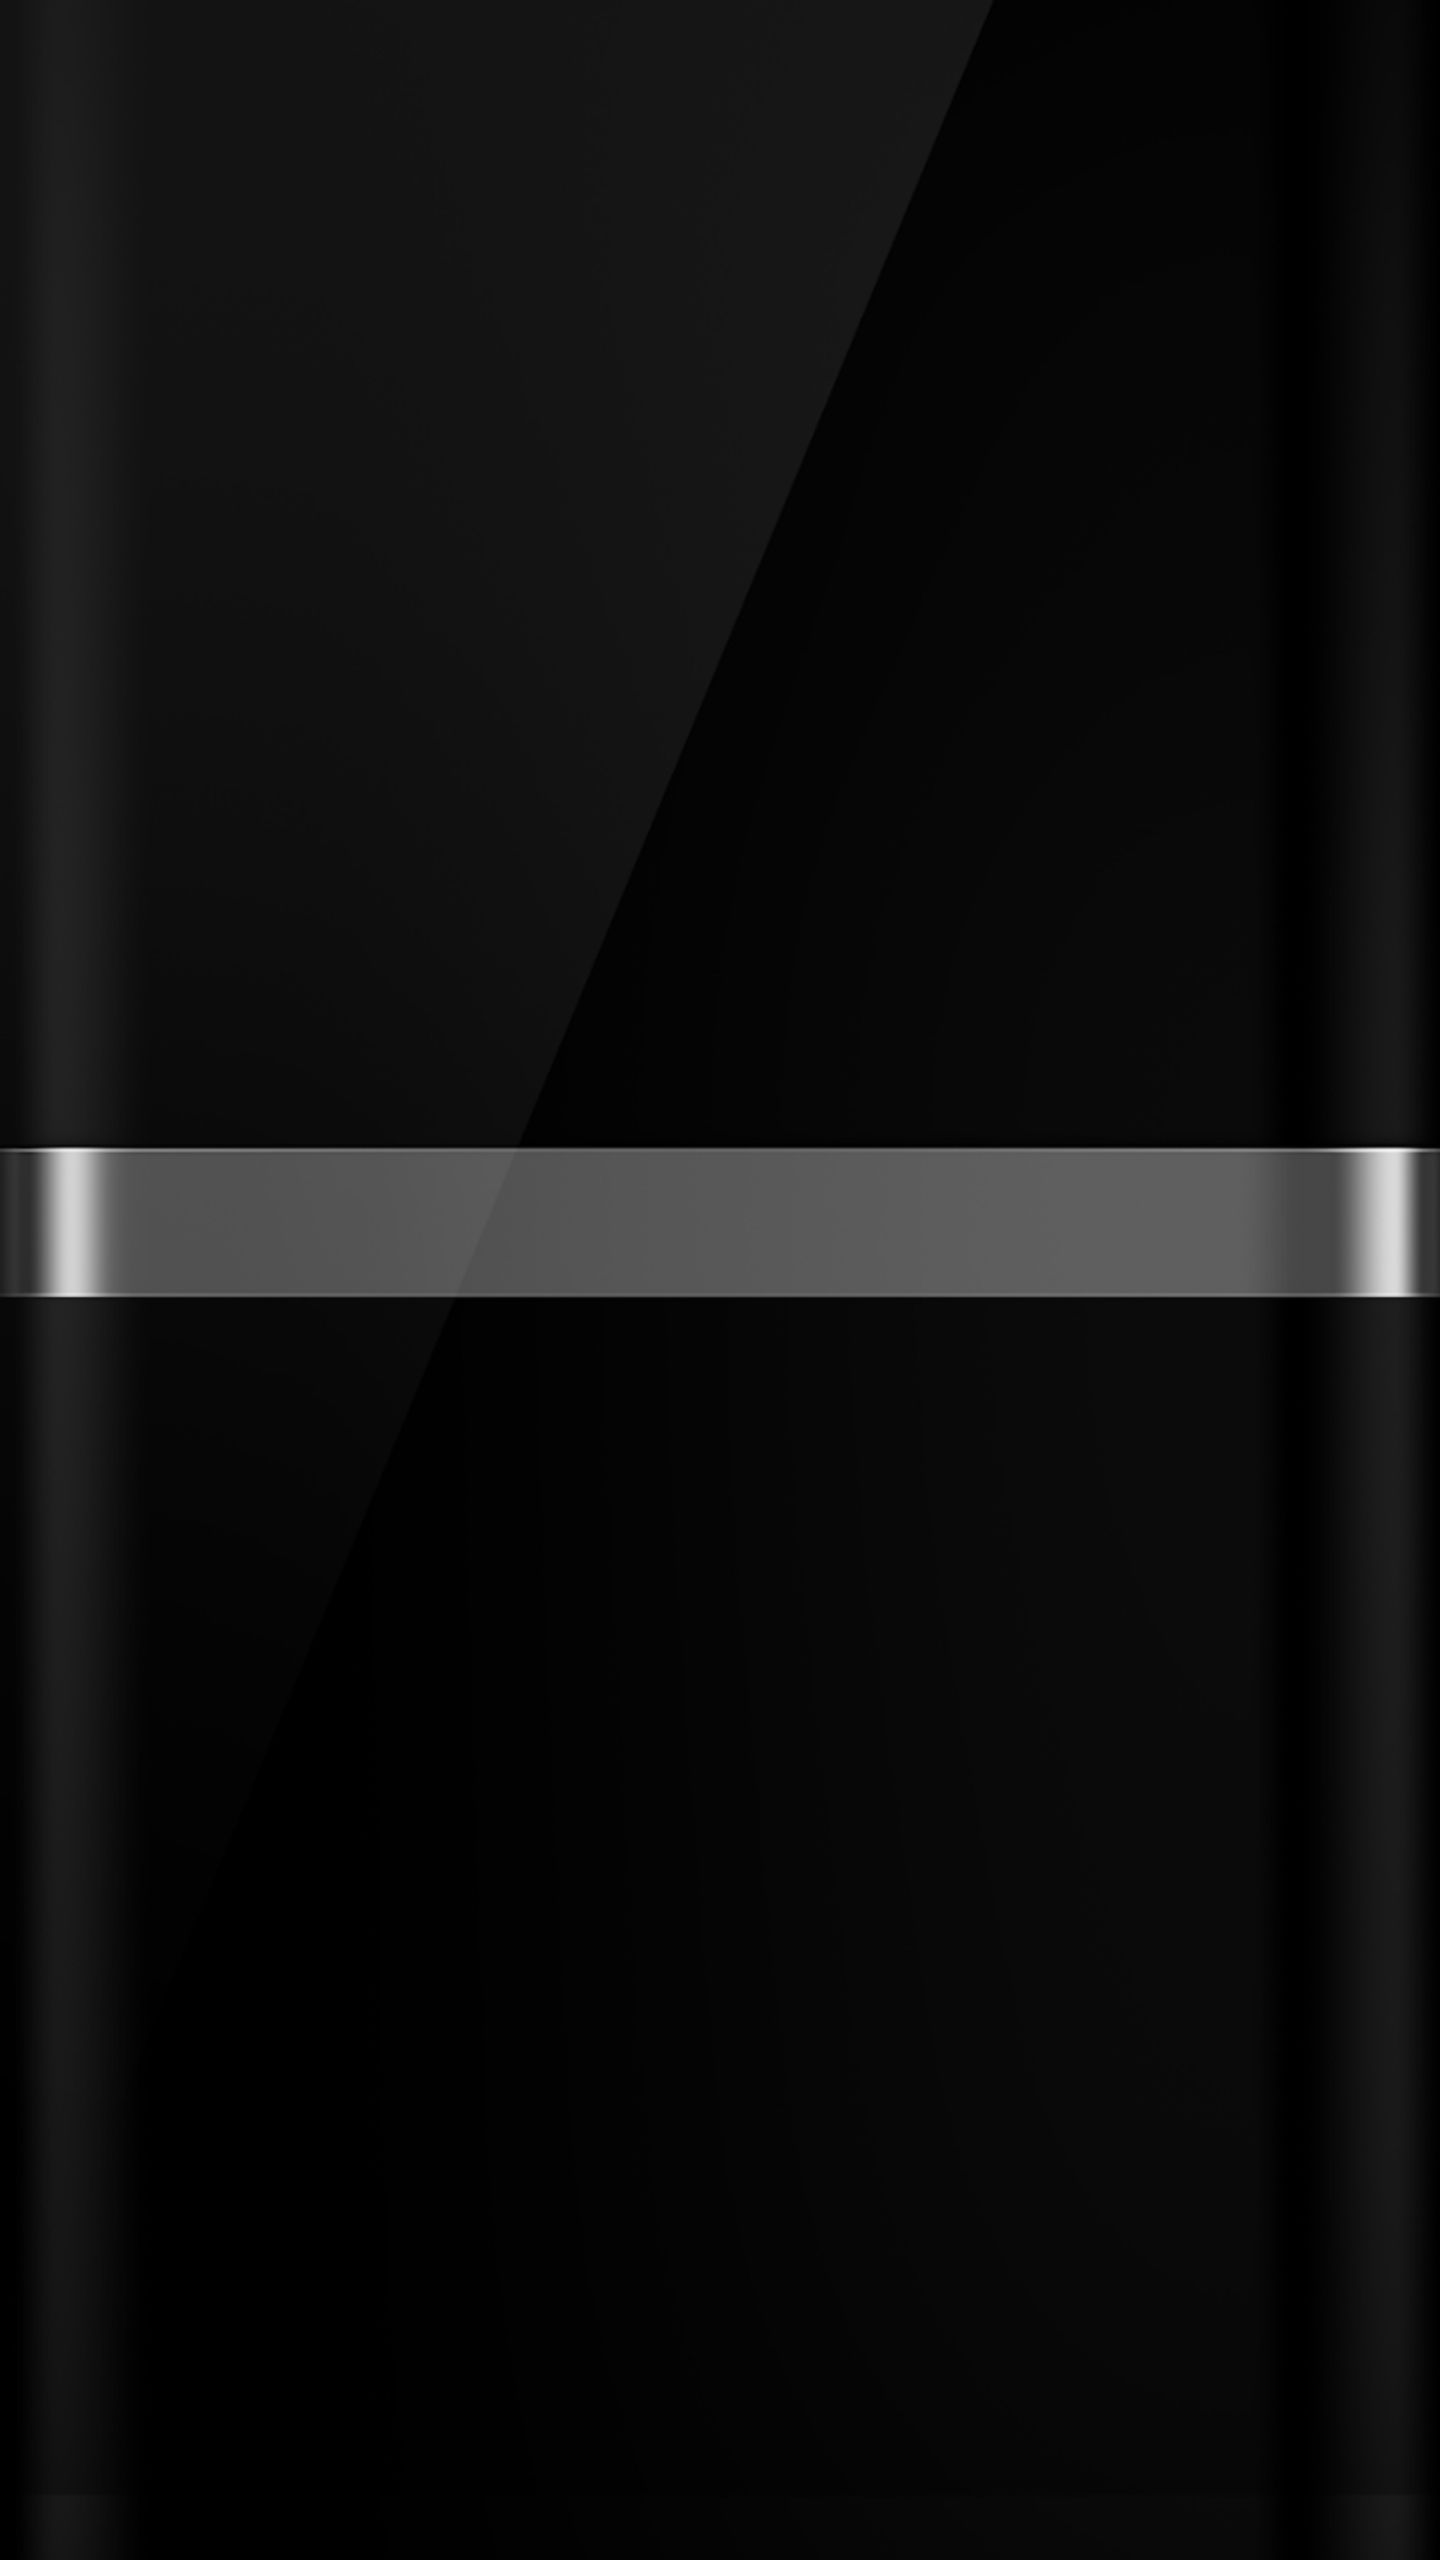 Dark S7 Edge Wallpaper 10 Black Background And Silver Line With